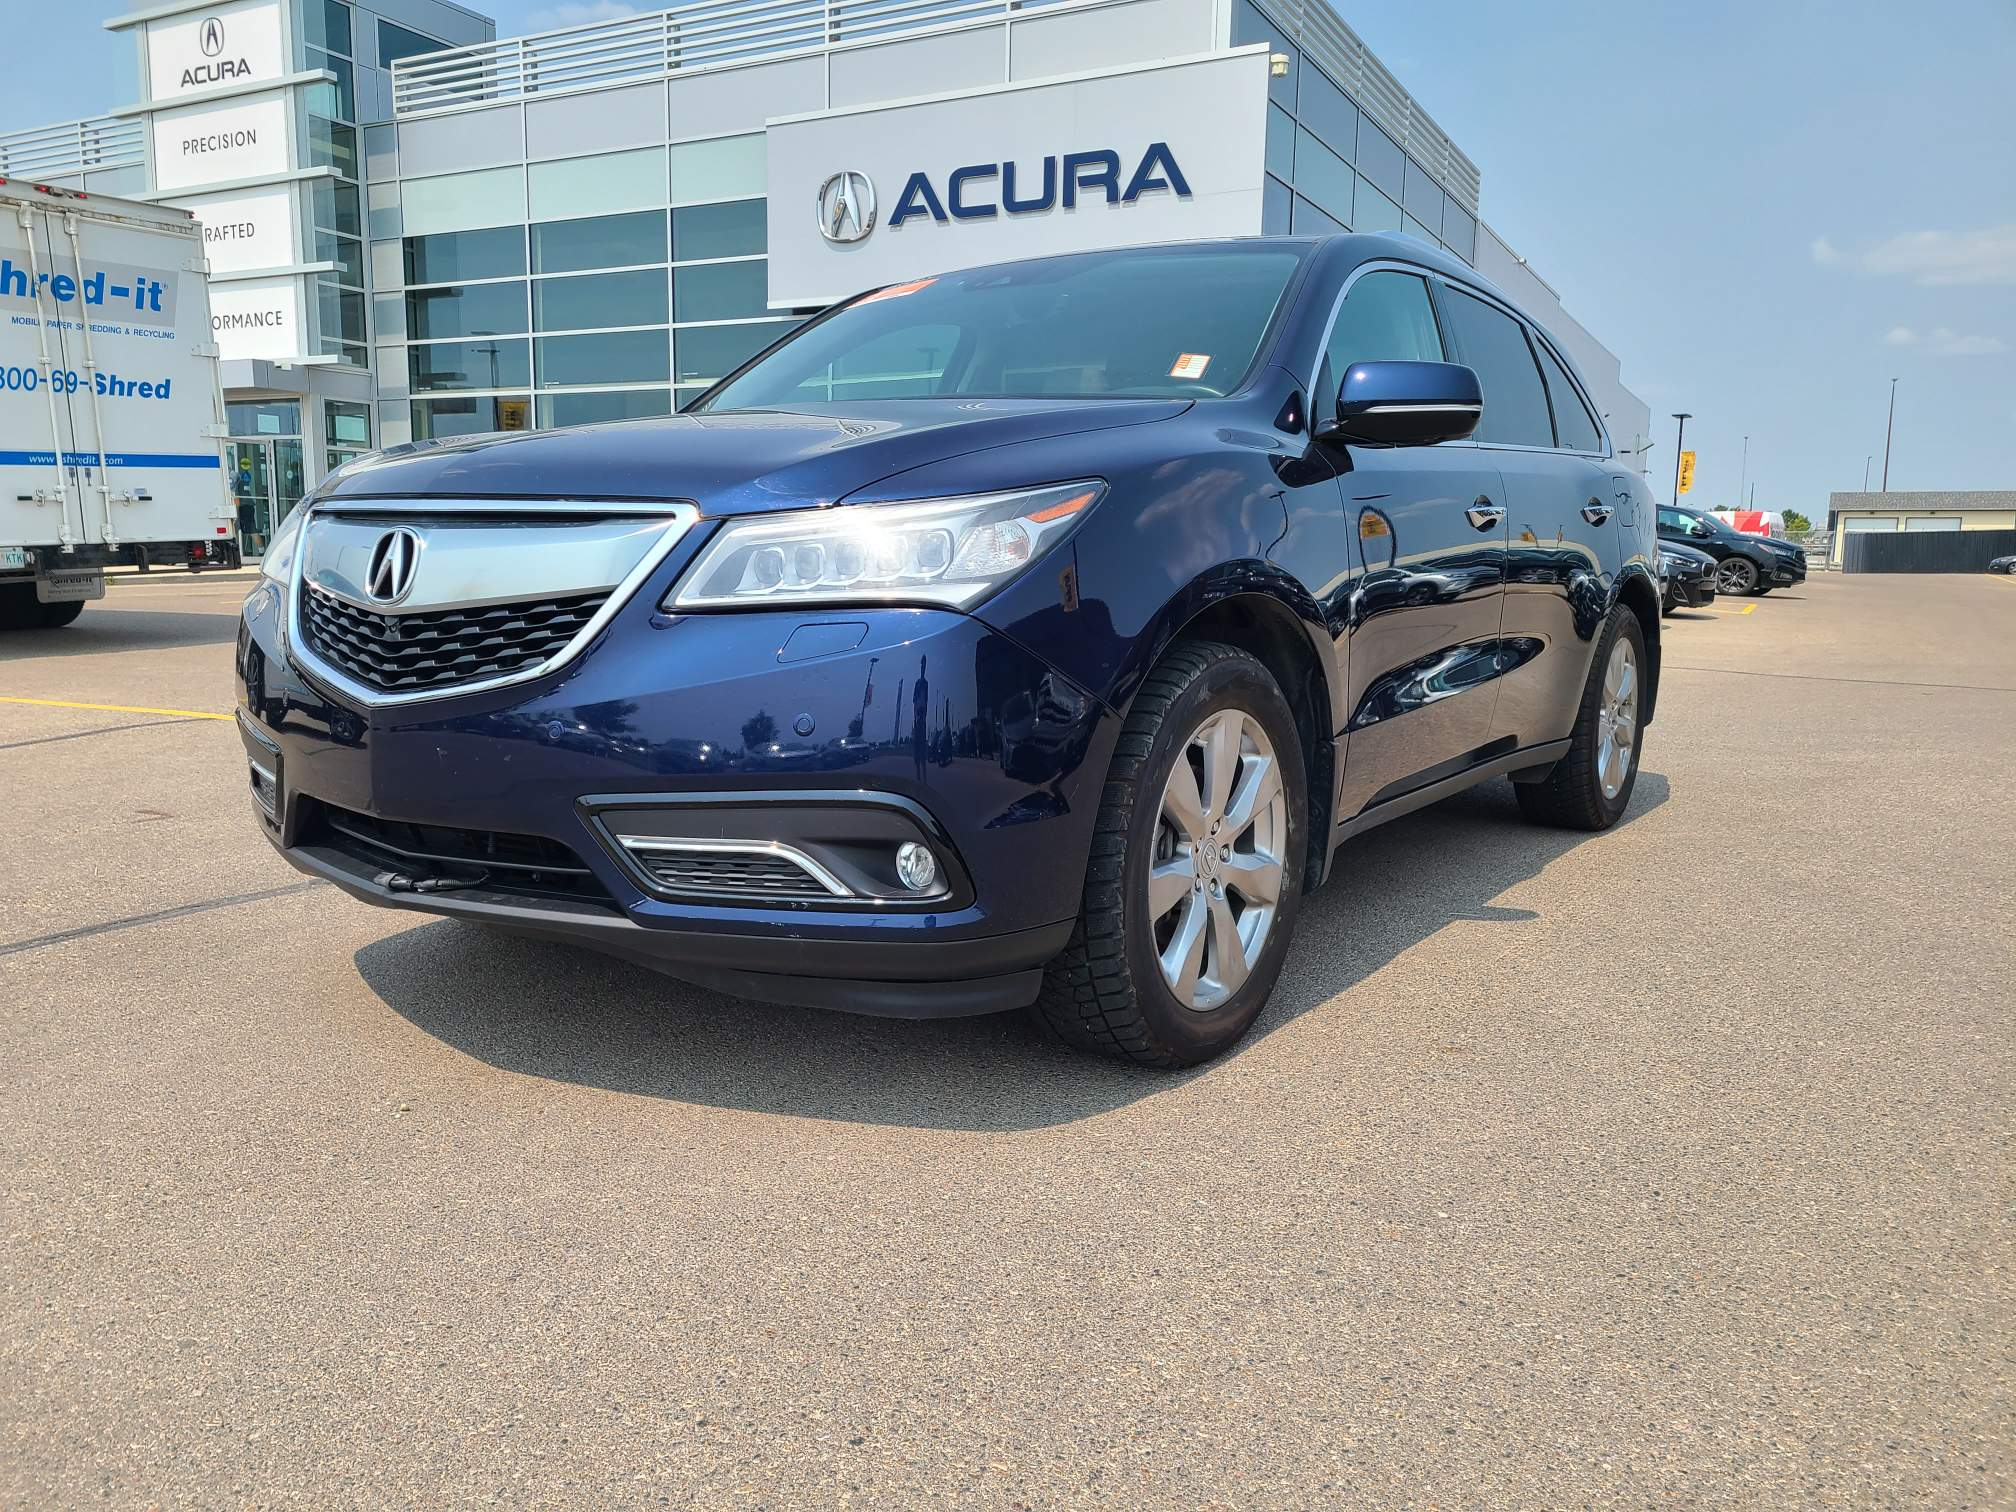 used 2016 Acura MDX car, priced at $32,599